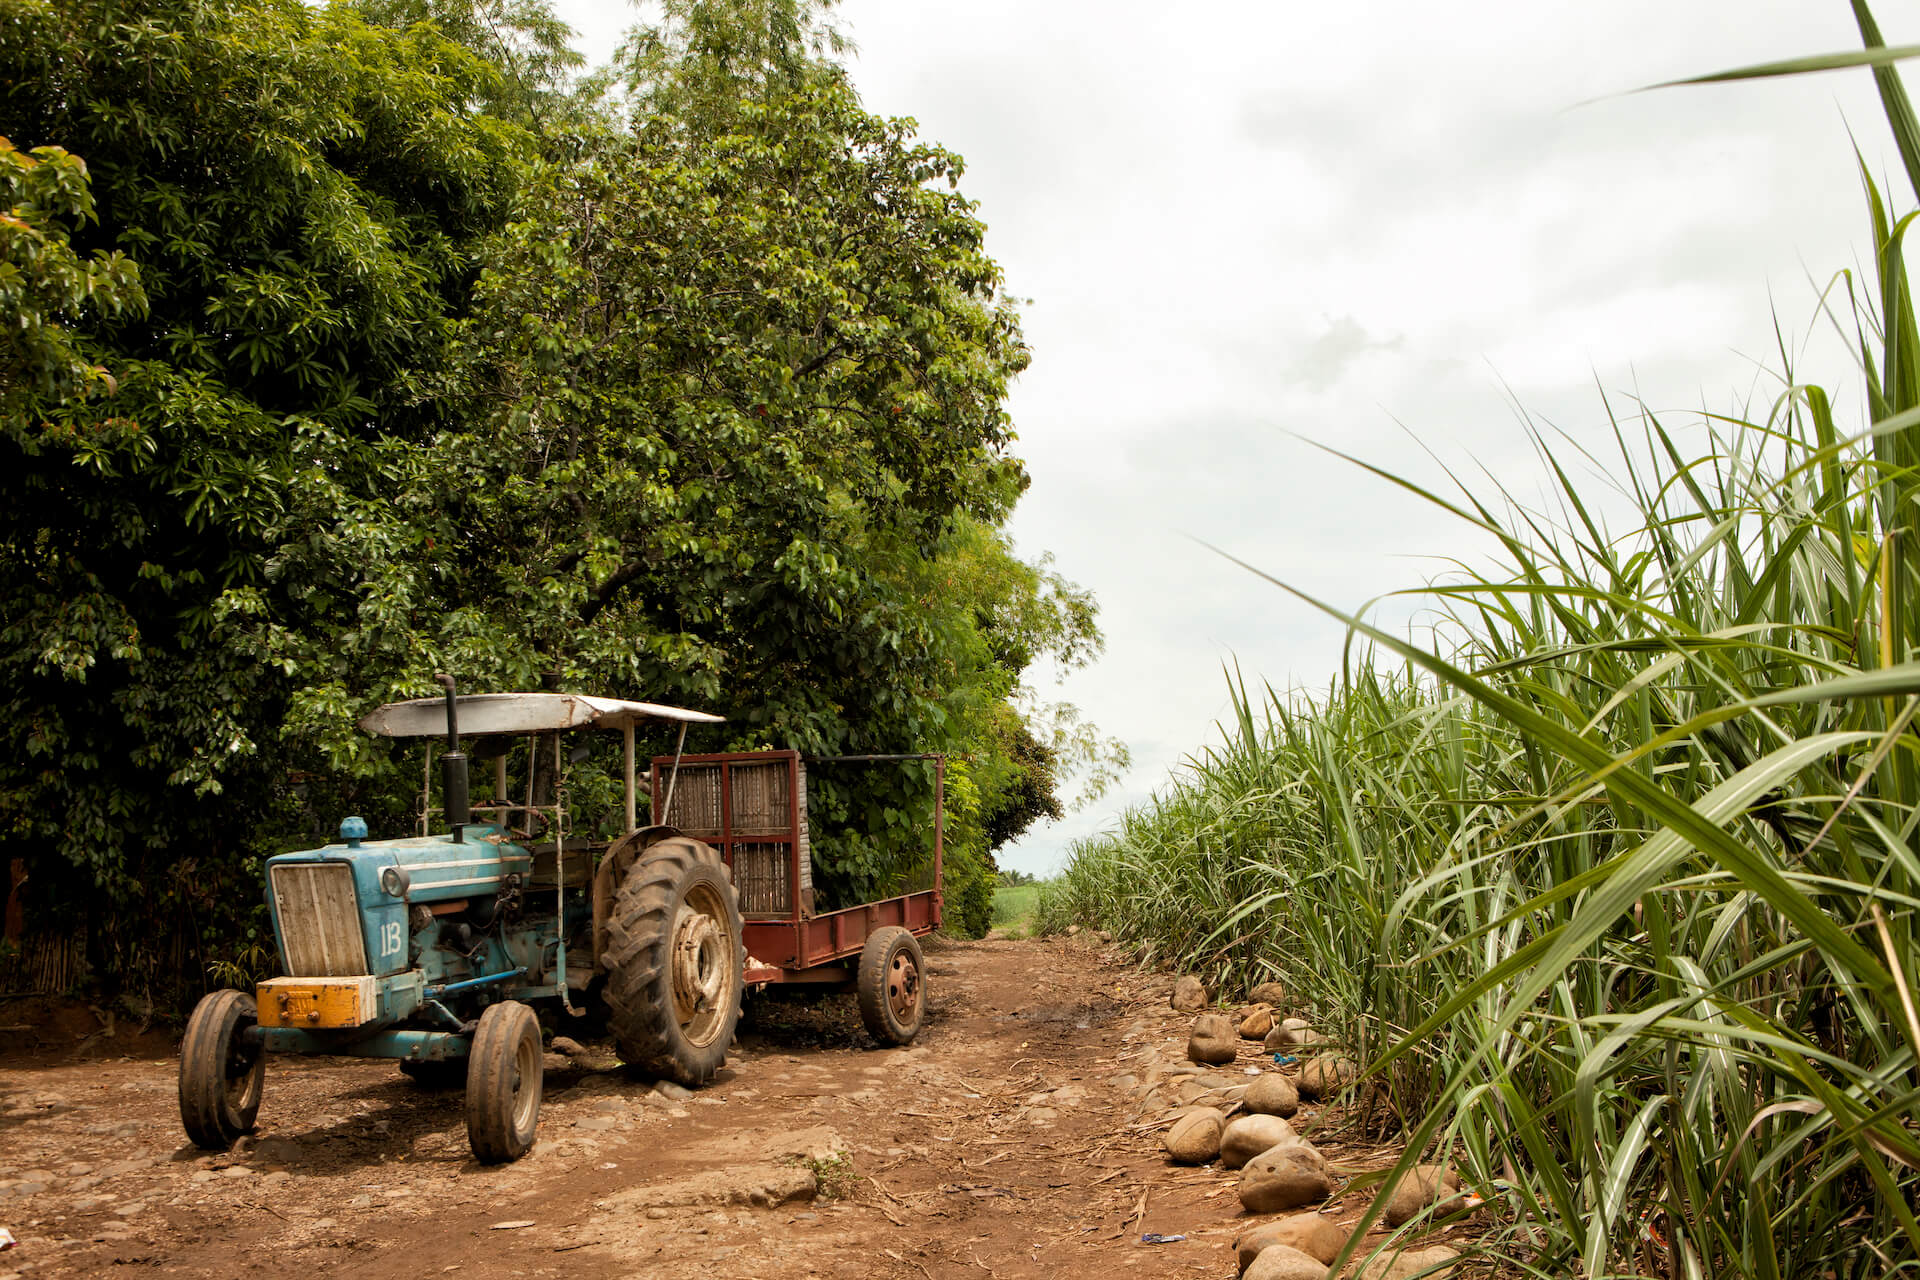 A tractor for breaking cut sugarcane